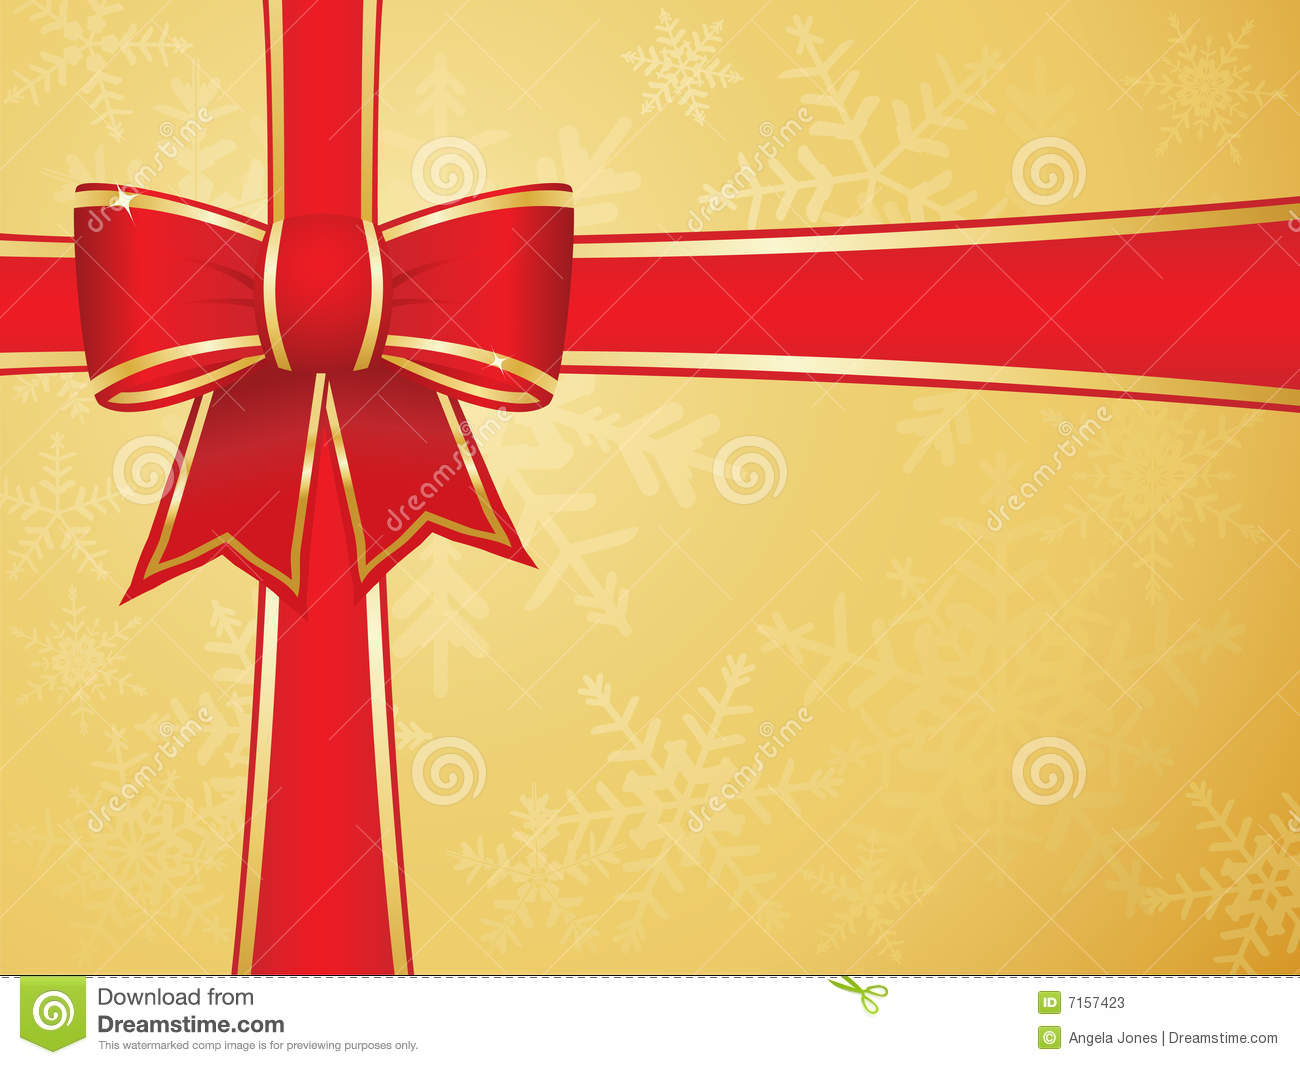 Green Christmas Bow Background Graphics: Christmas Bow And Ribbons With Gold Background Stock